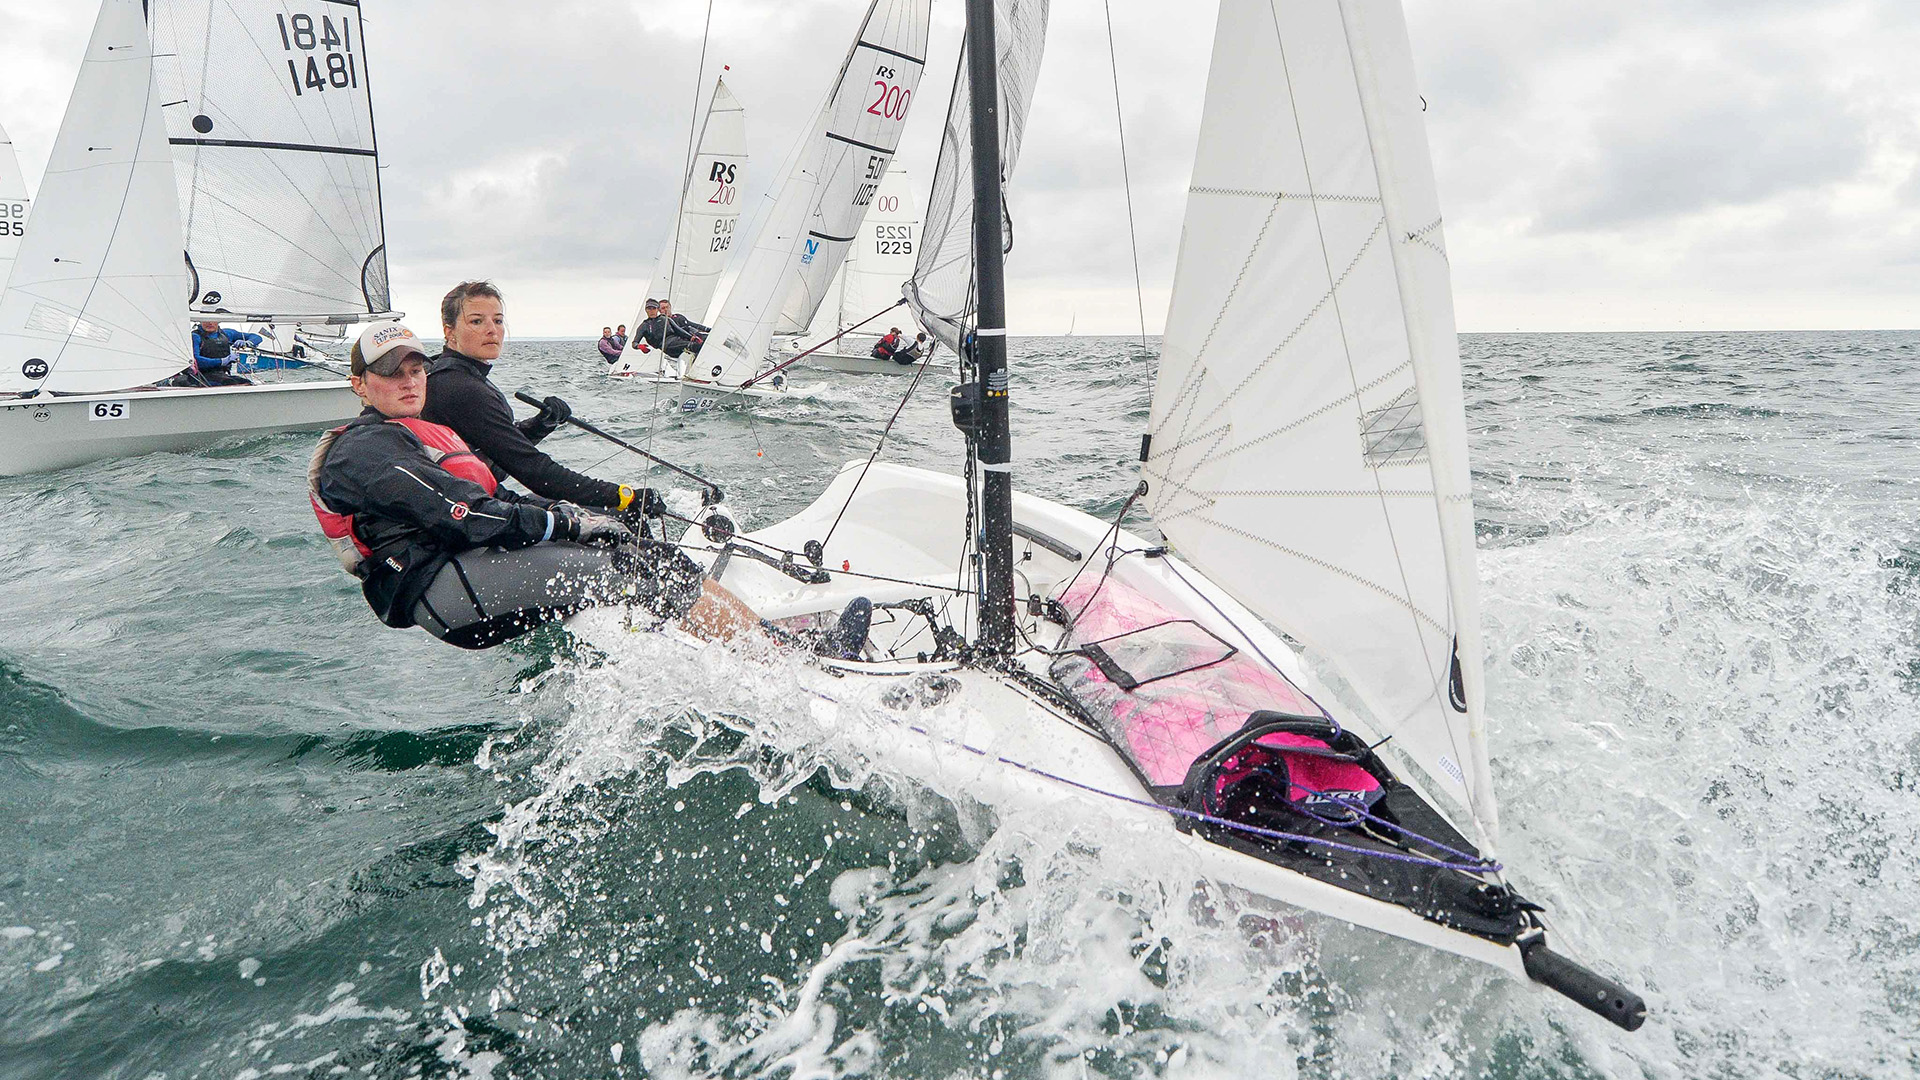 Rs200 Hugely Successful Modern Double Handed Racing Class